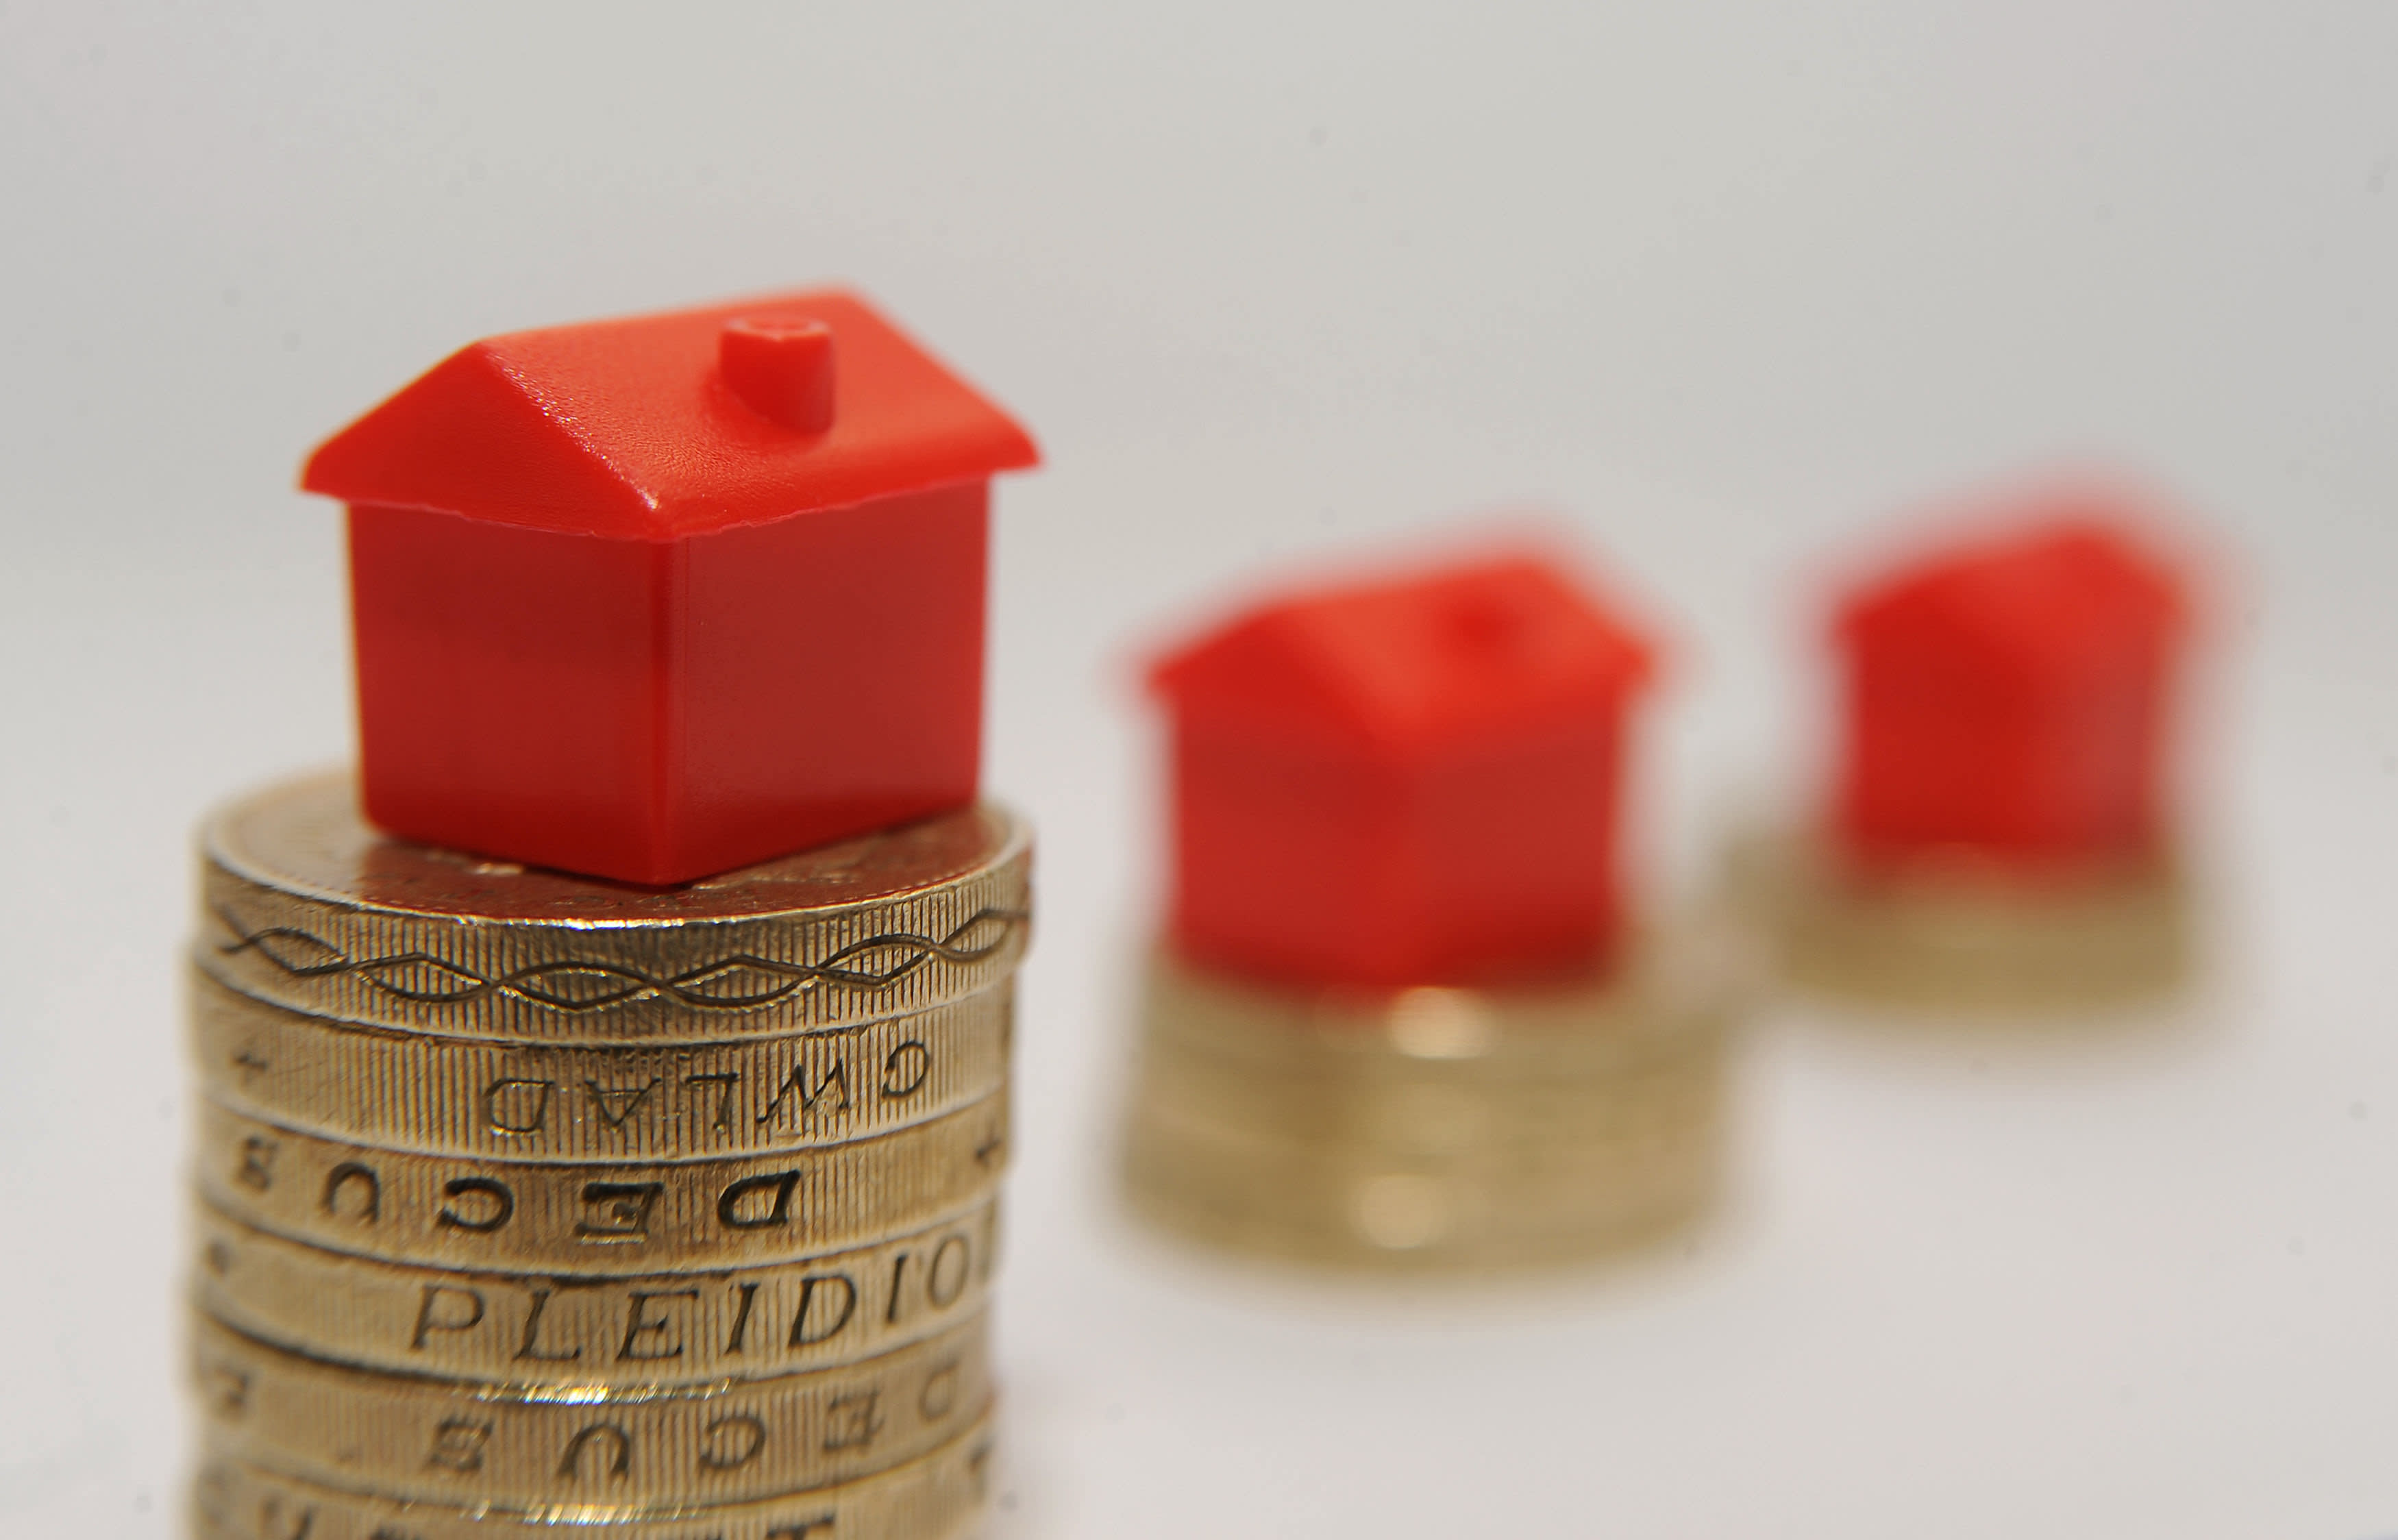 UK house prices on the rise